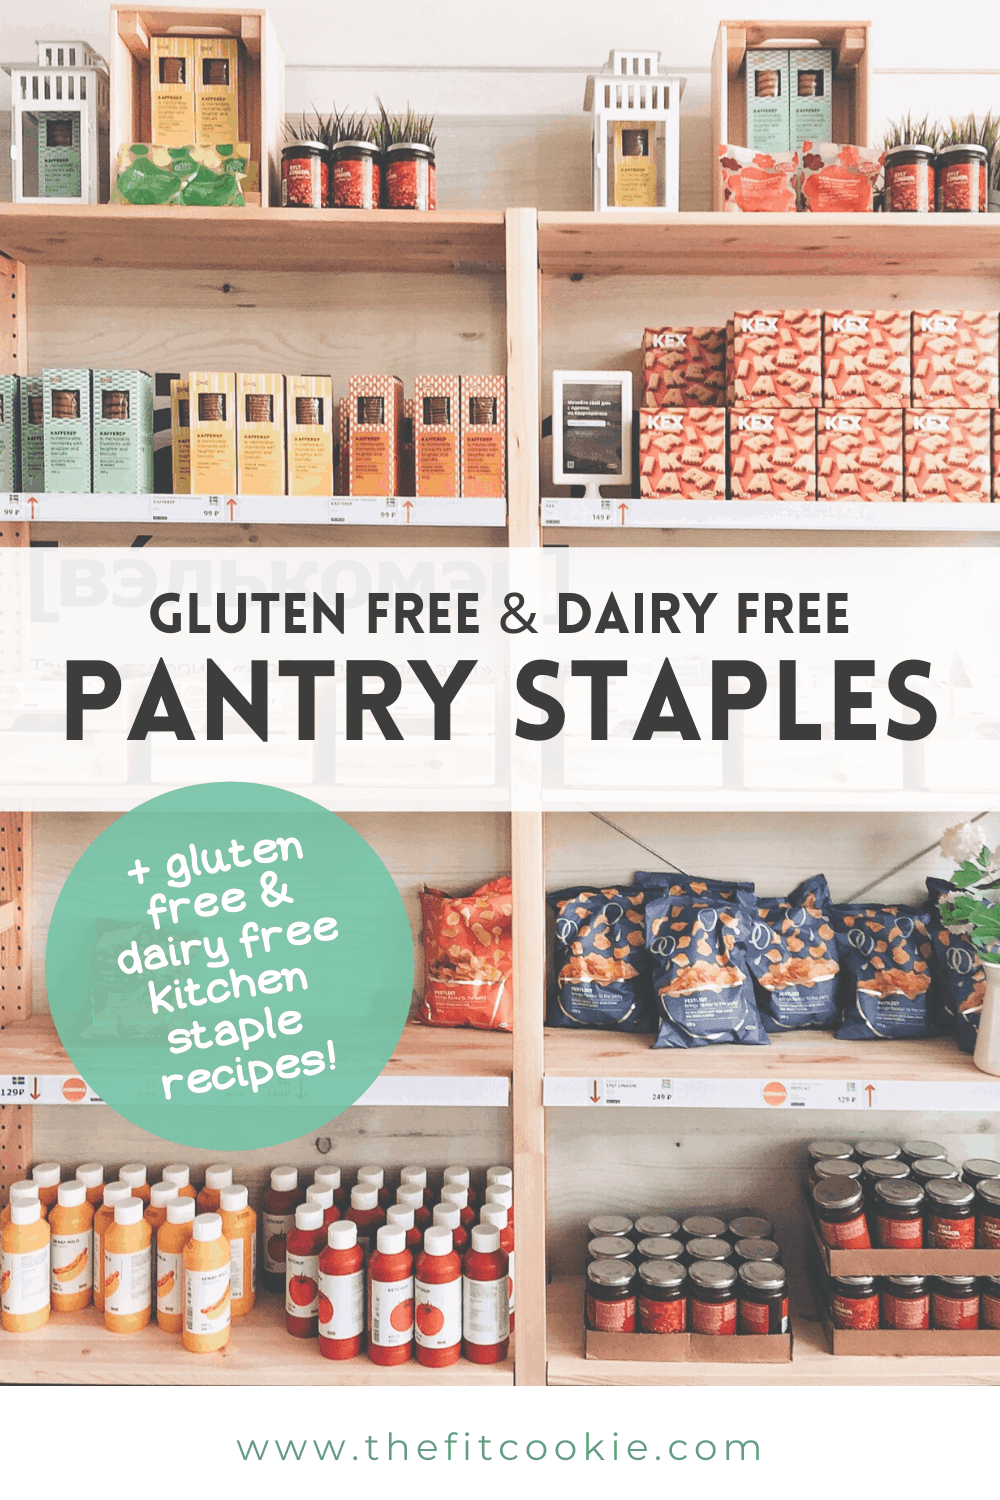 stocked store shelf with label gluten free and dairy free pantry staples